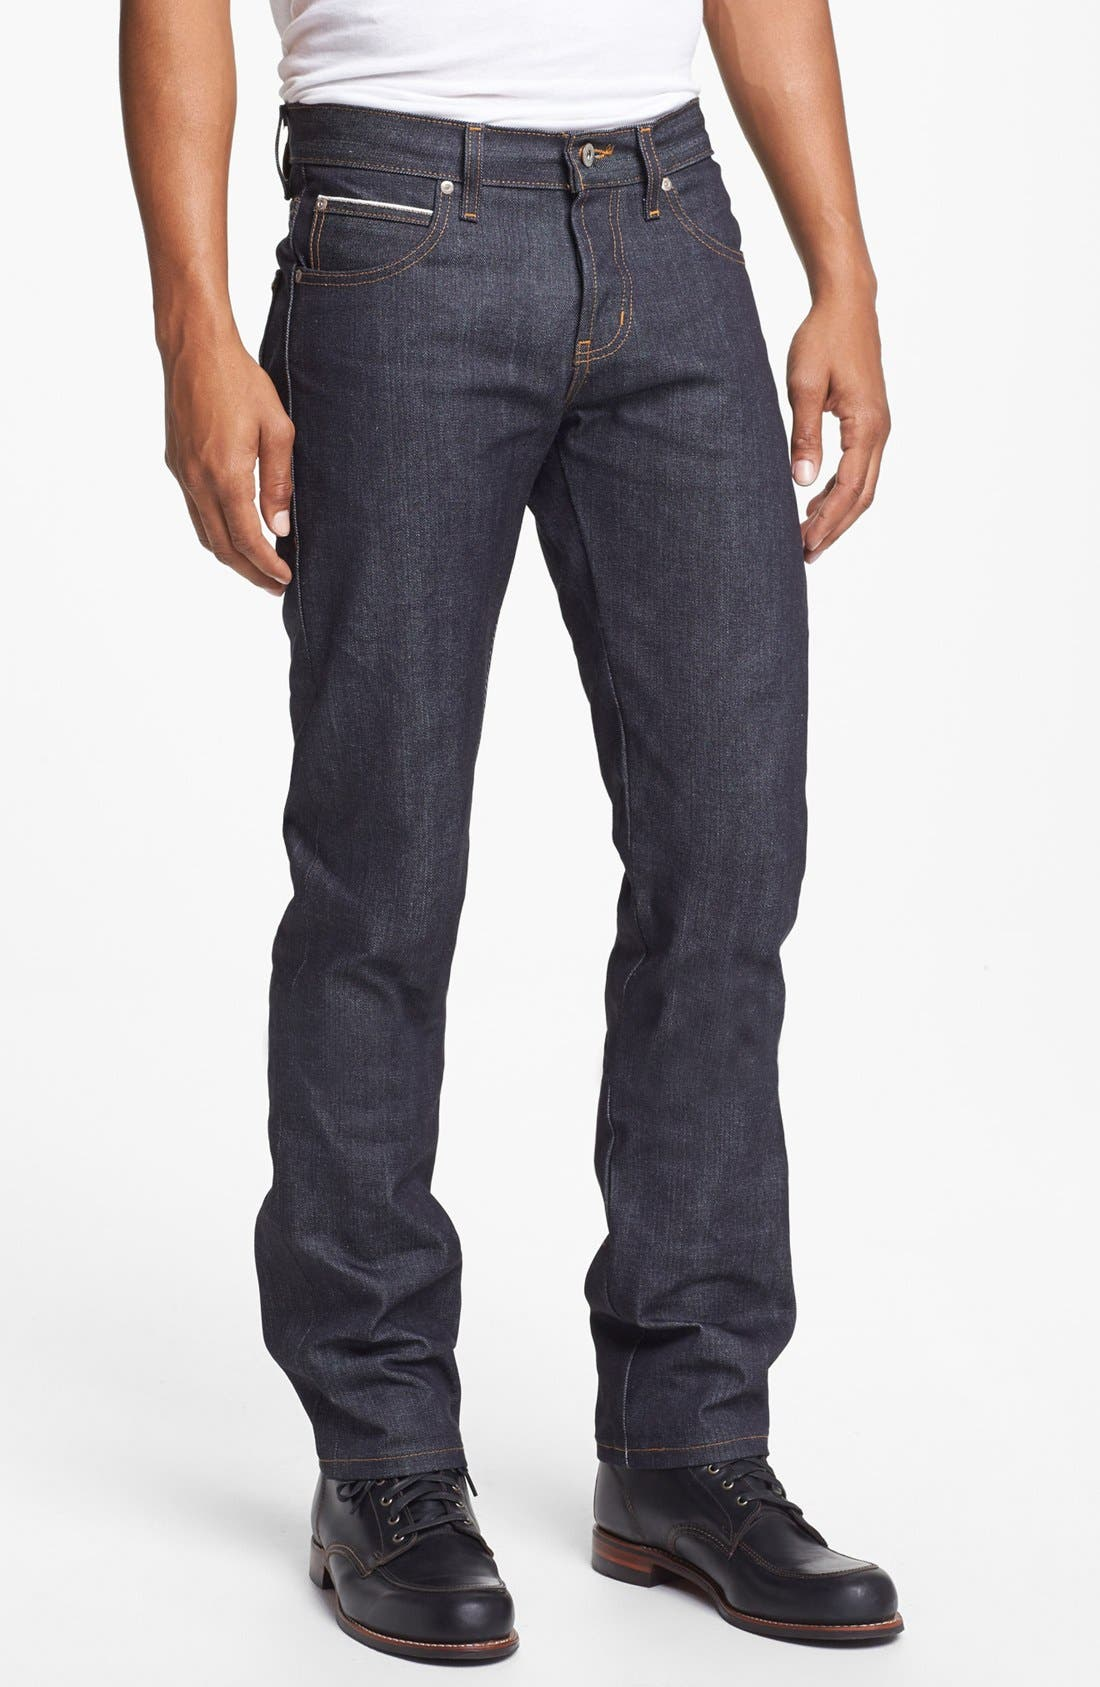 Naked & Famous Denim Super Skinny Guy Skinny Fit Raw Selvedge Jeans (Left Hand Twill Selvedge)